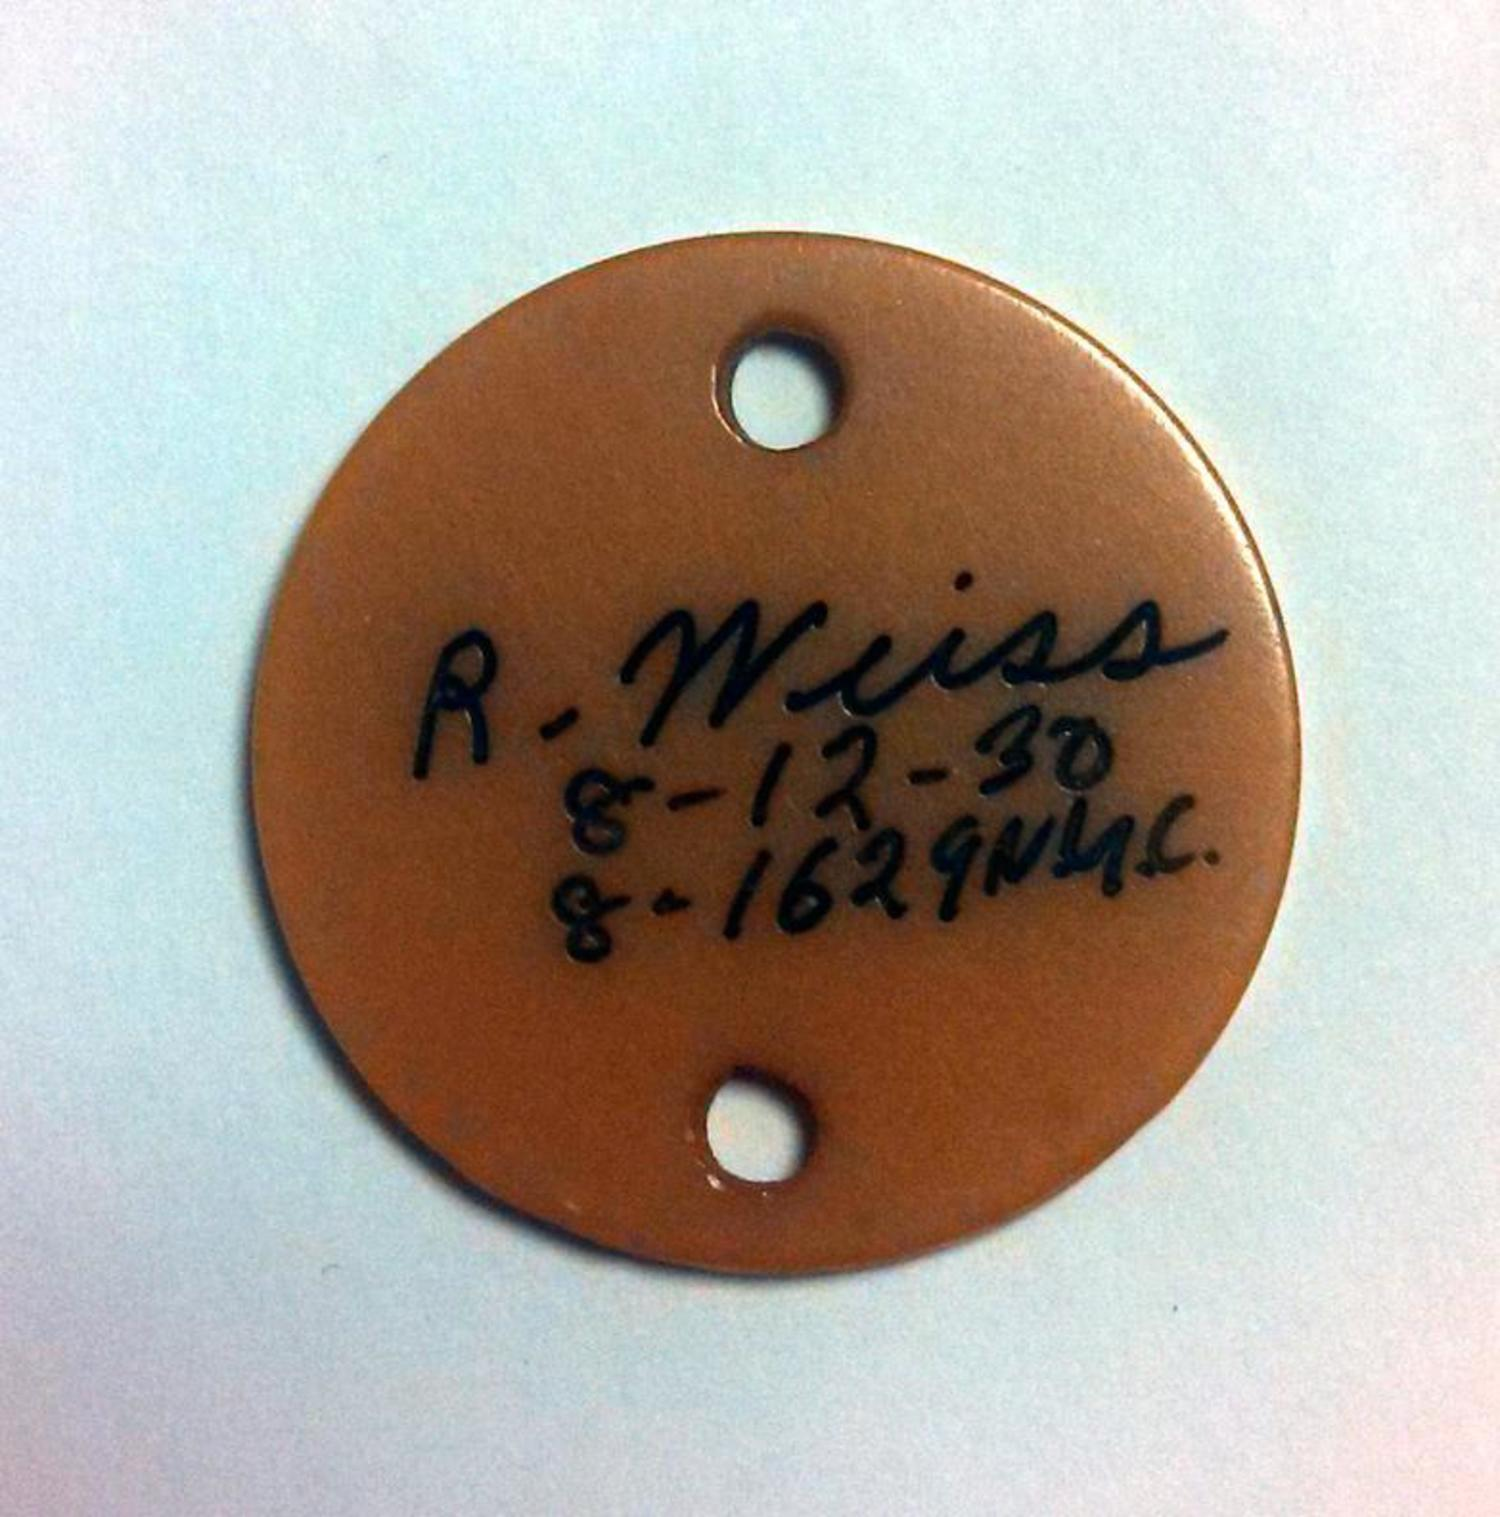 WWII student identification tag